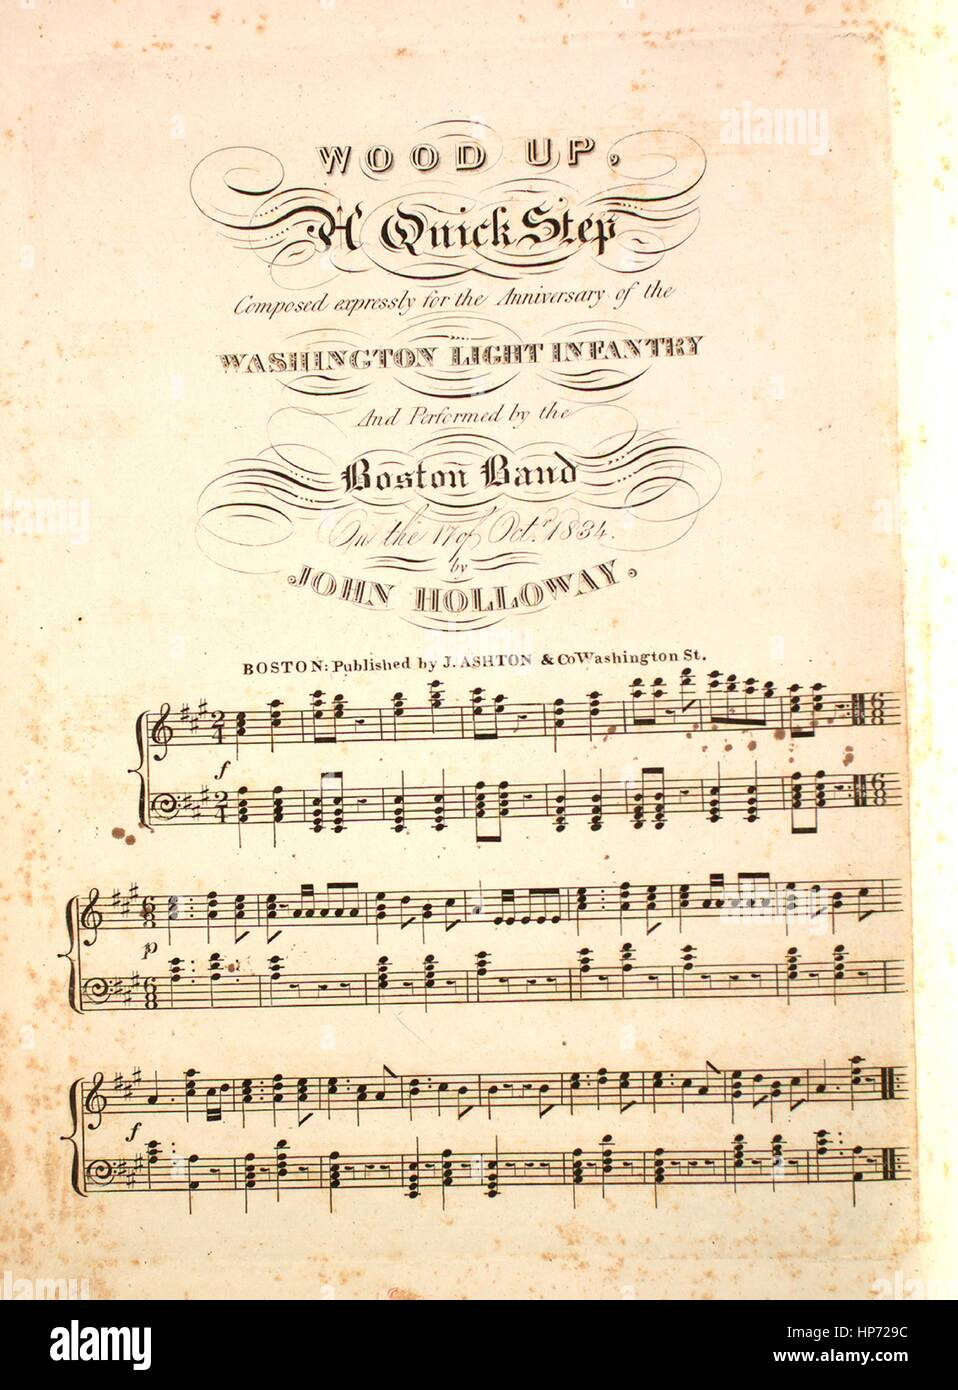 Sheet music cover image of the song 'Wood Up A Quick Step', with